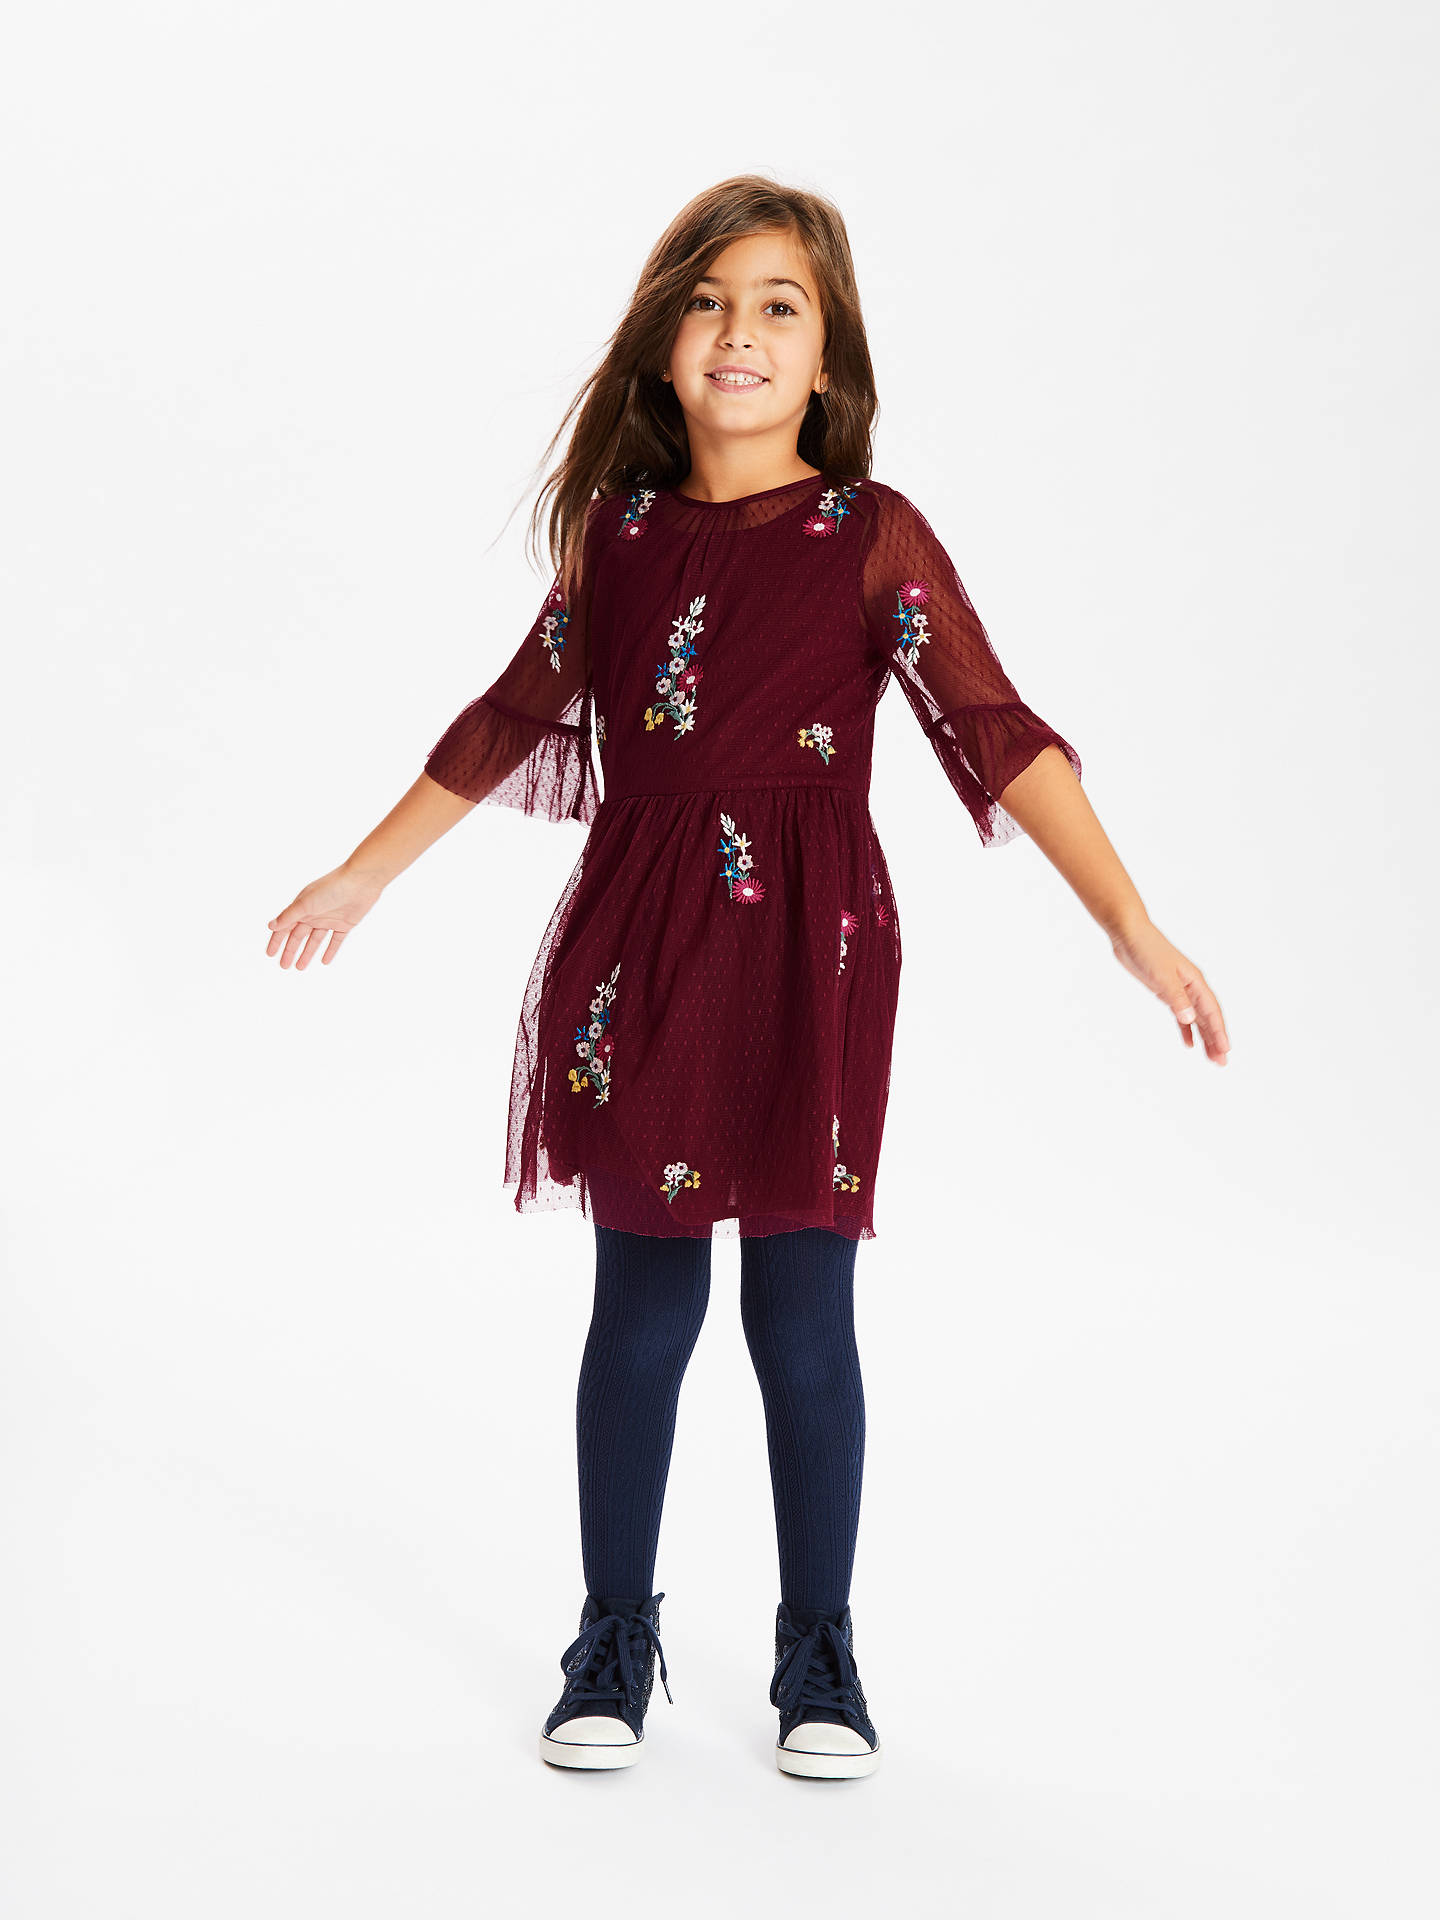 Buy John Lewis & Partners Girls' Embellished Mesh Dress, Burgundy, 2 years Online at johnlewis.com